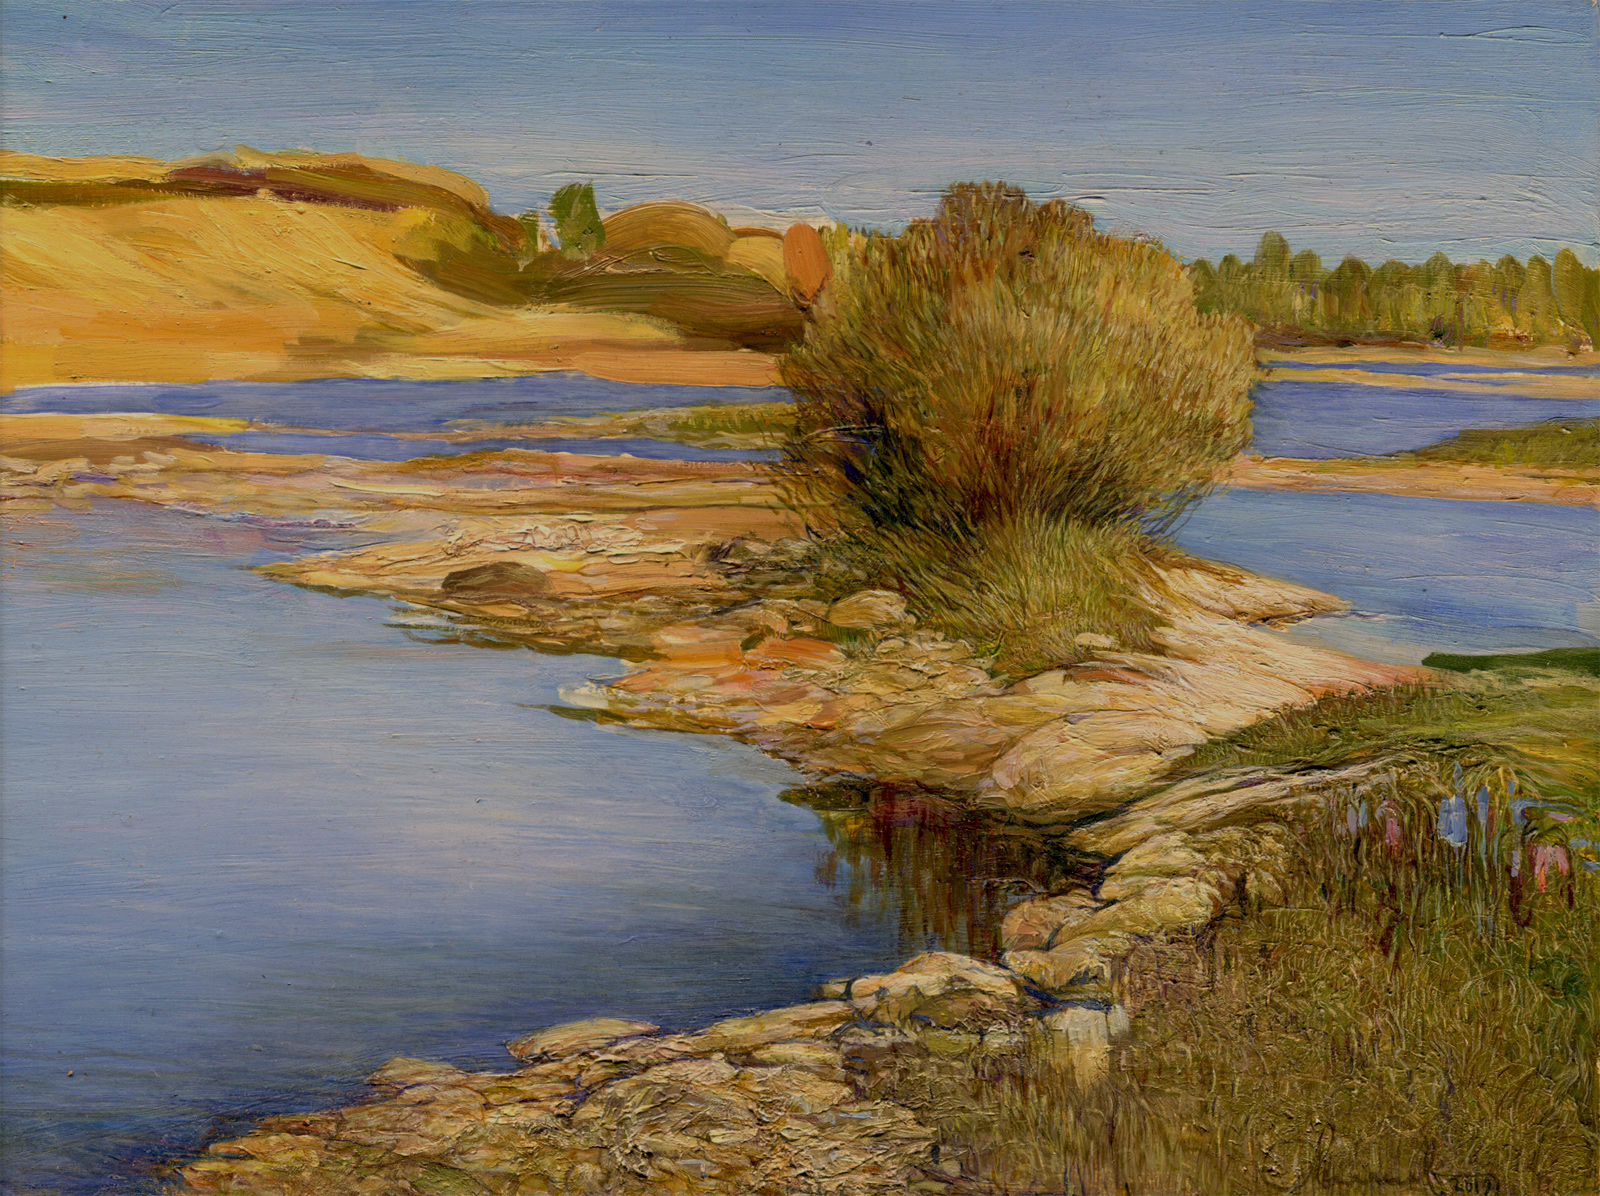 , Andrey Mamaev, Buy the painting Oil